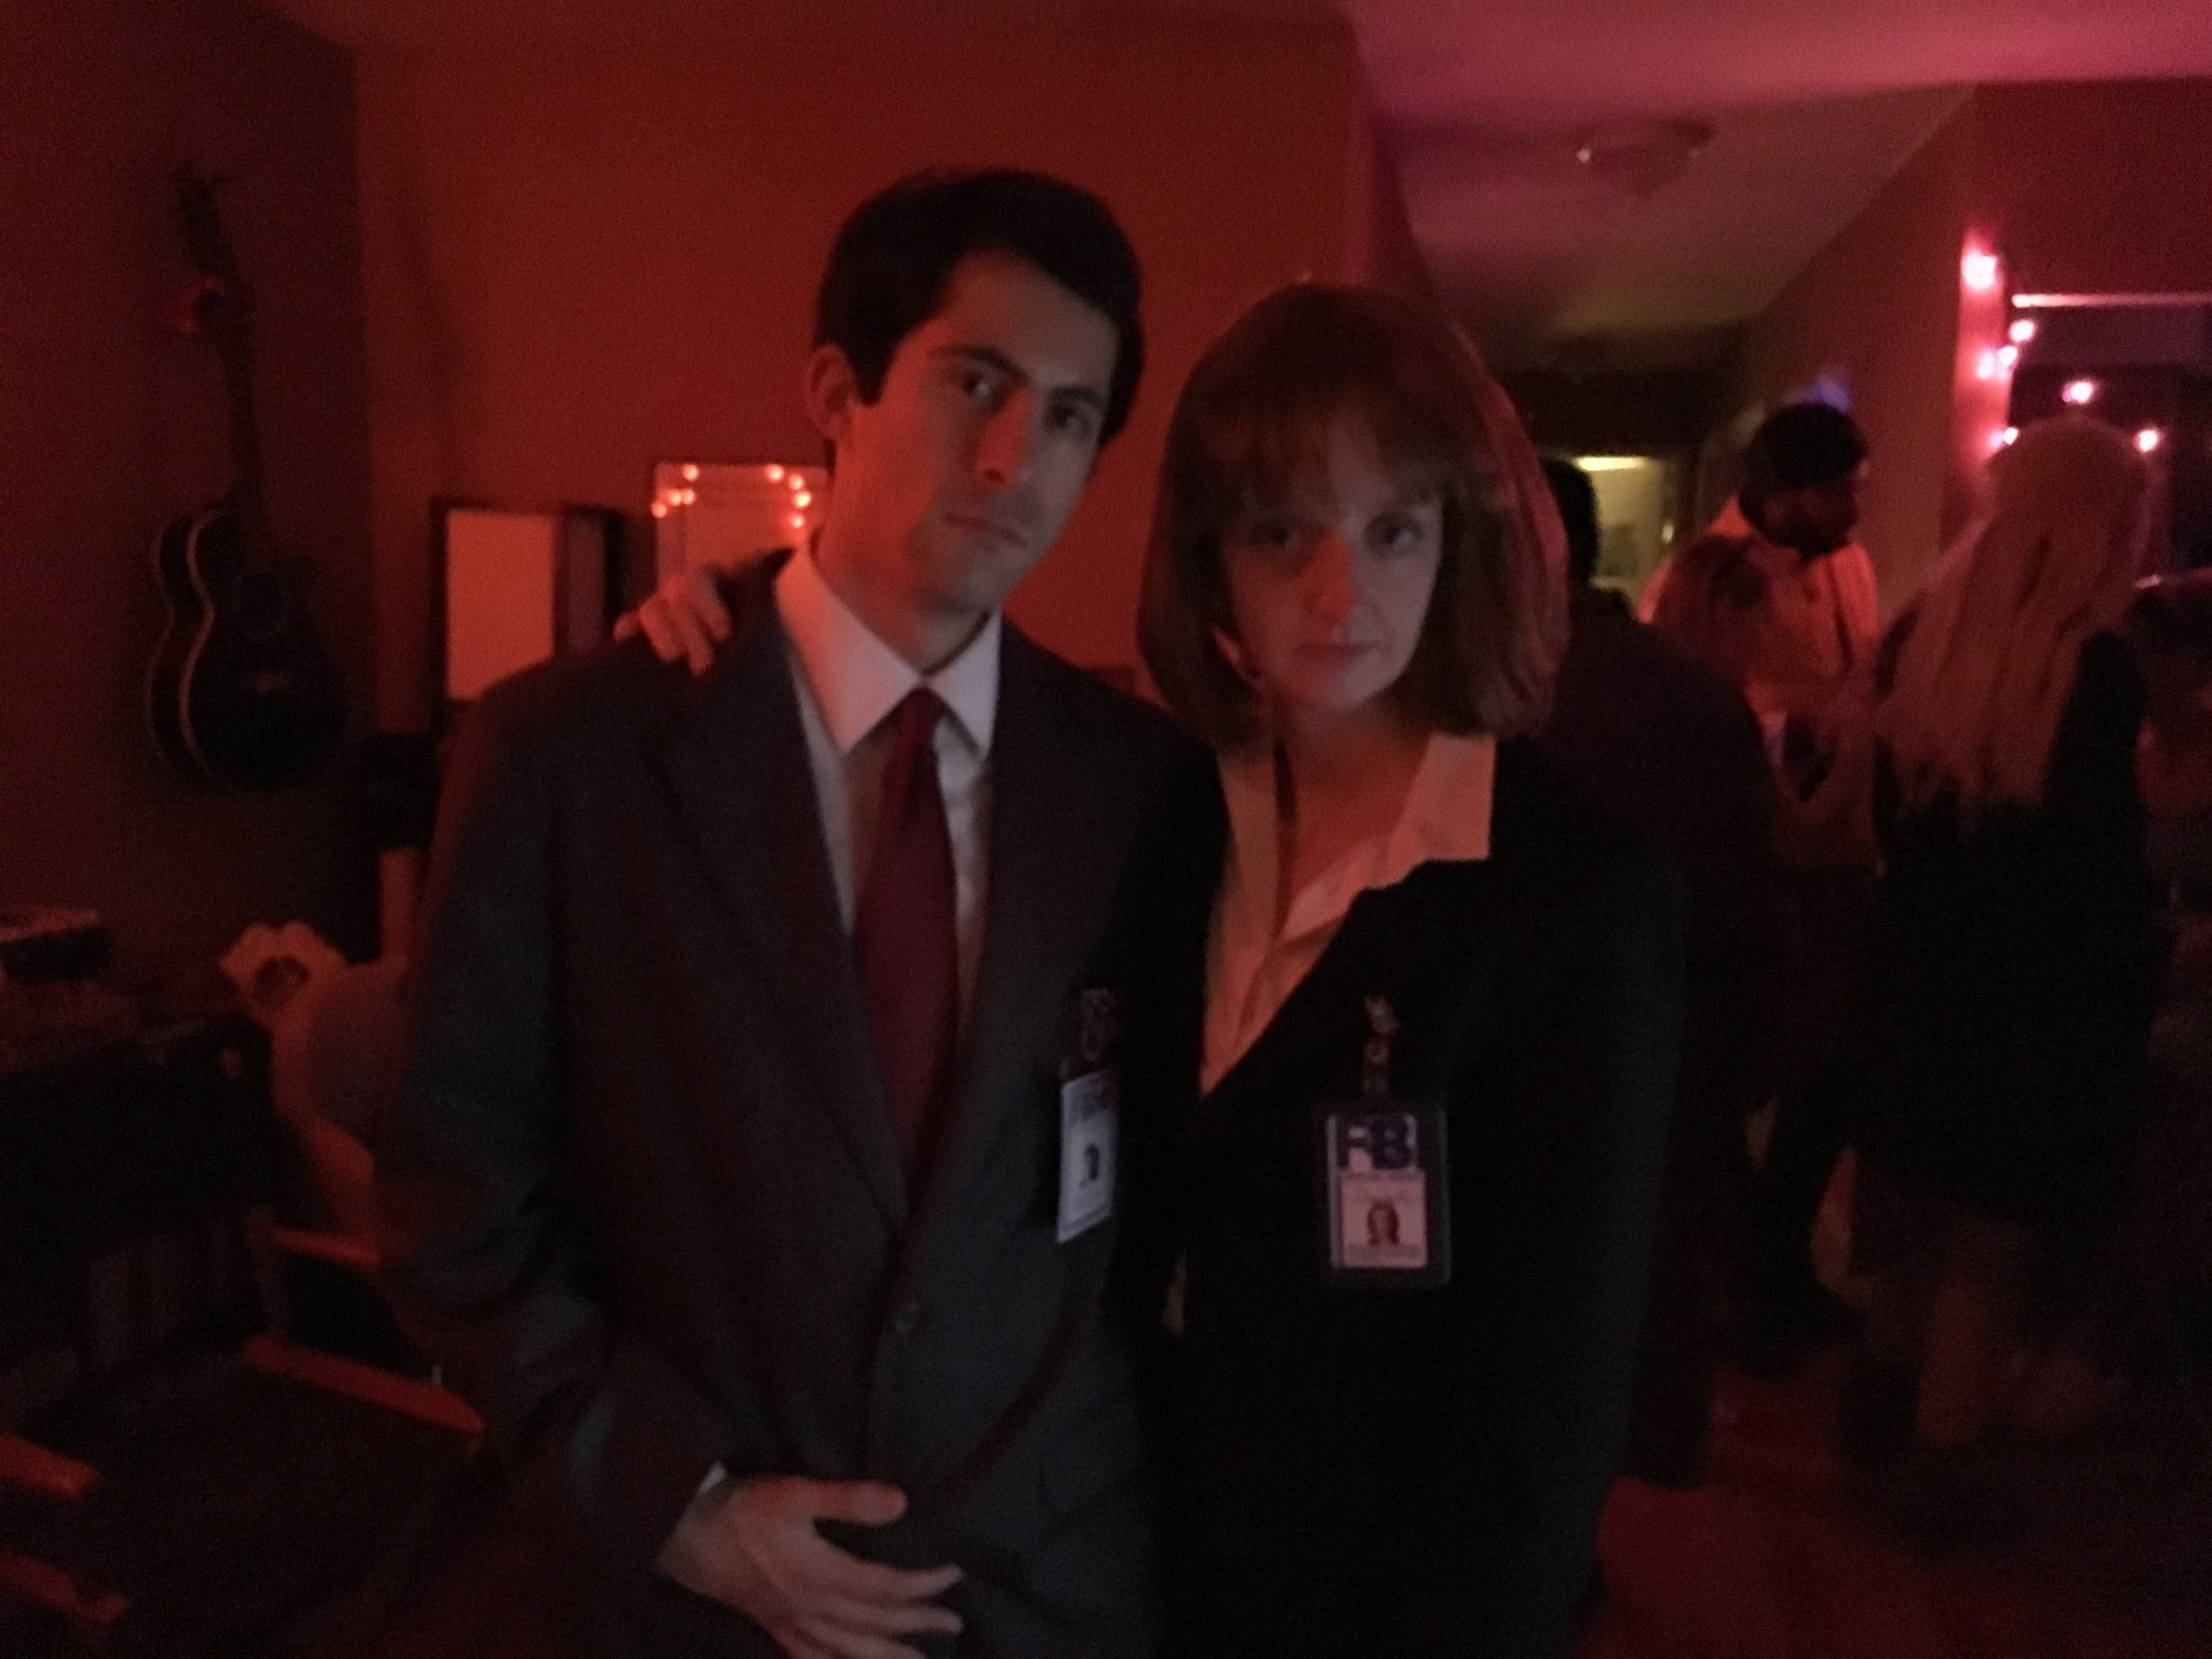 Fox Mulder and Dana Scully - X-Files